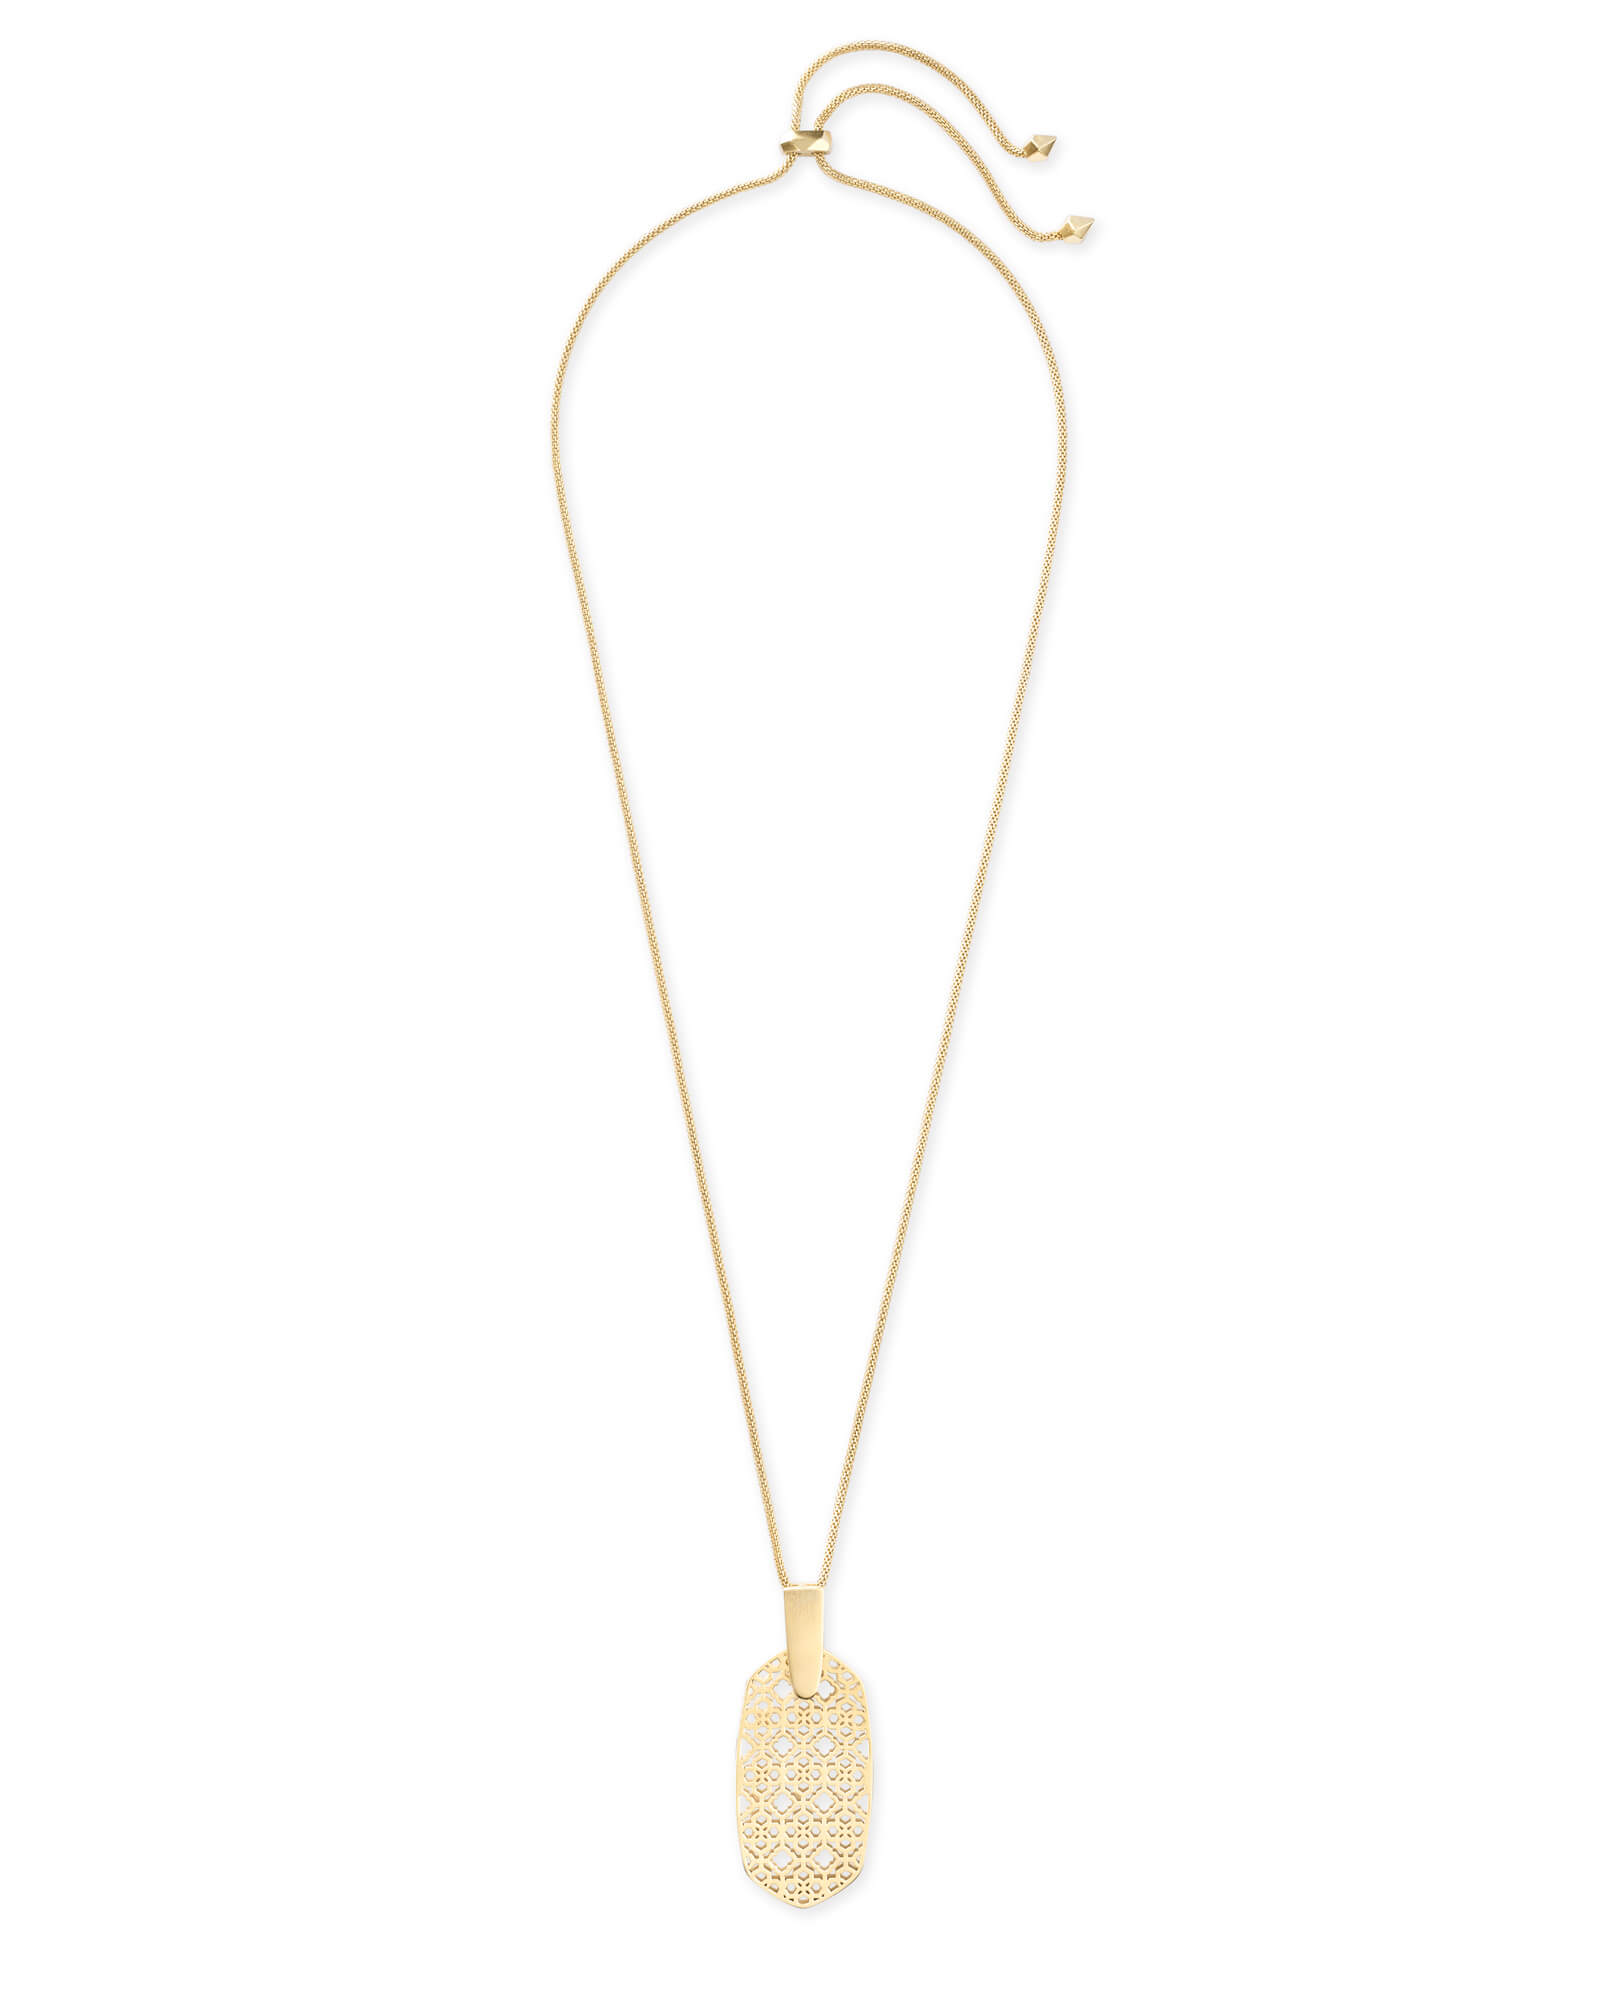 Inez Gold Long Pendant Necklace in Gold Filigree